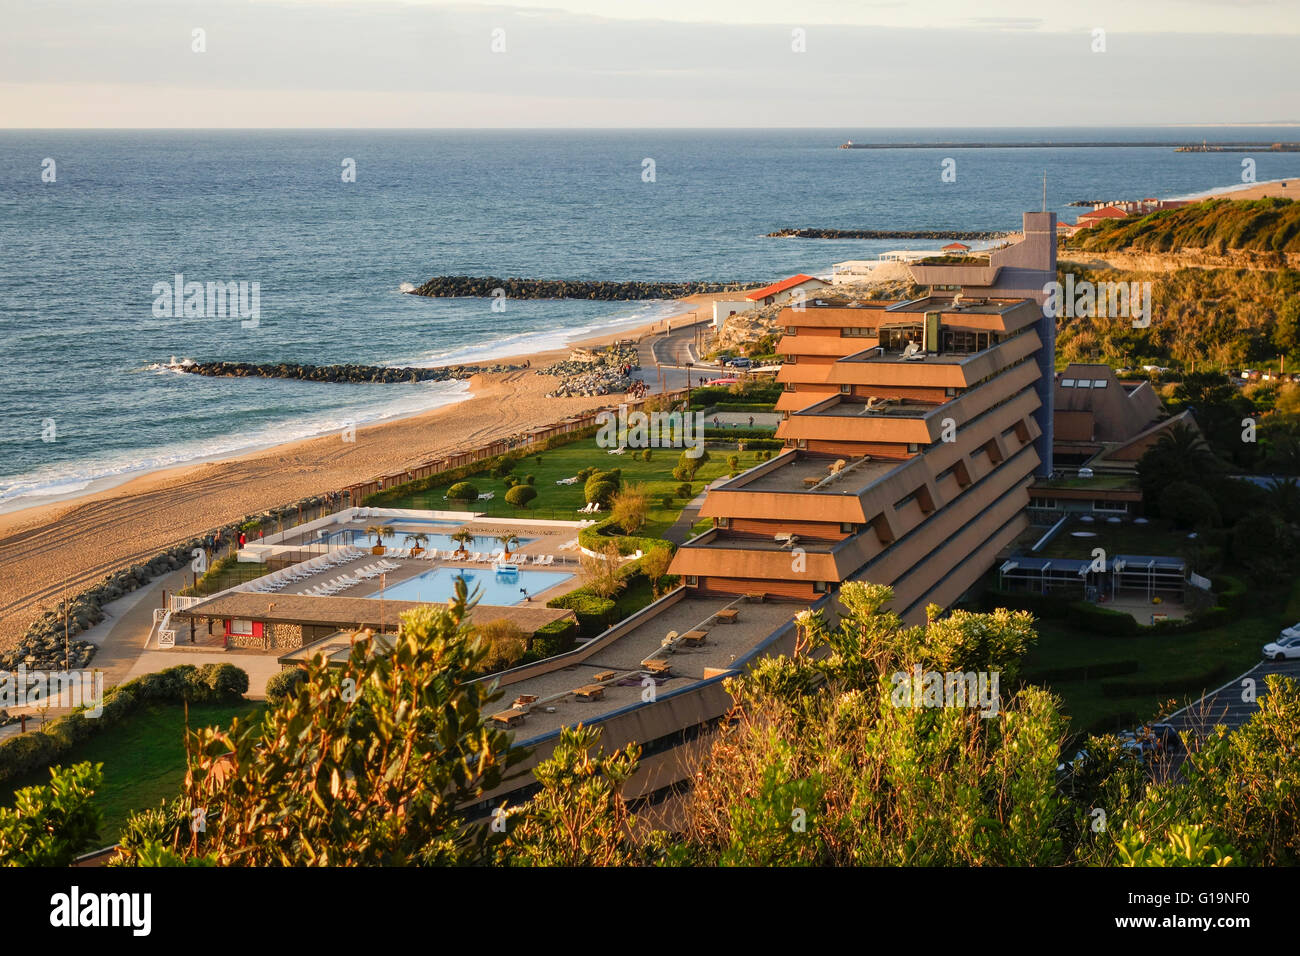 Resort Hotel Belambra Clubs La Chambre Damour Aquitaine Biarritz French Basque Country France